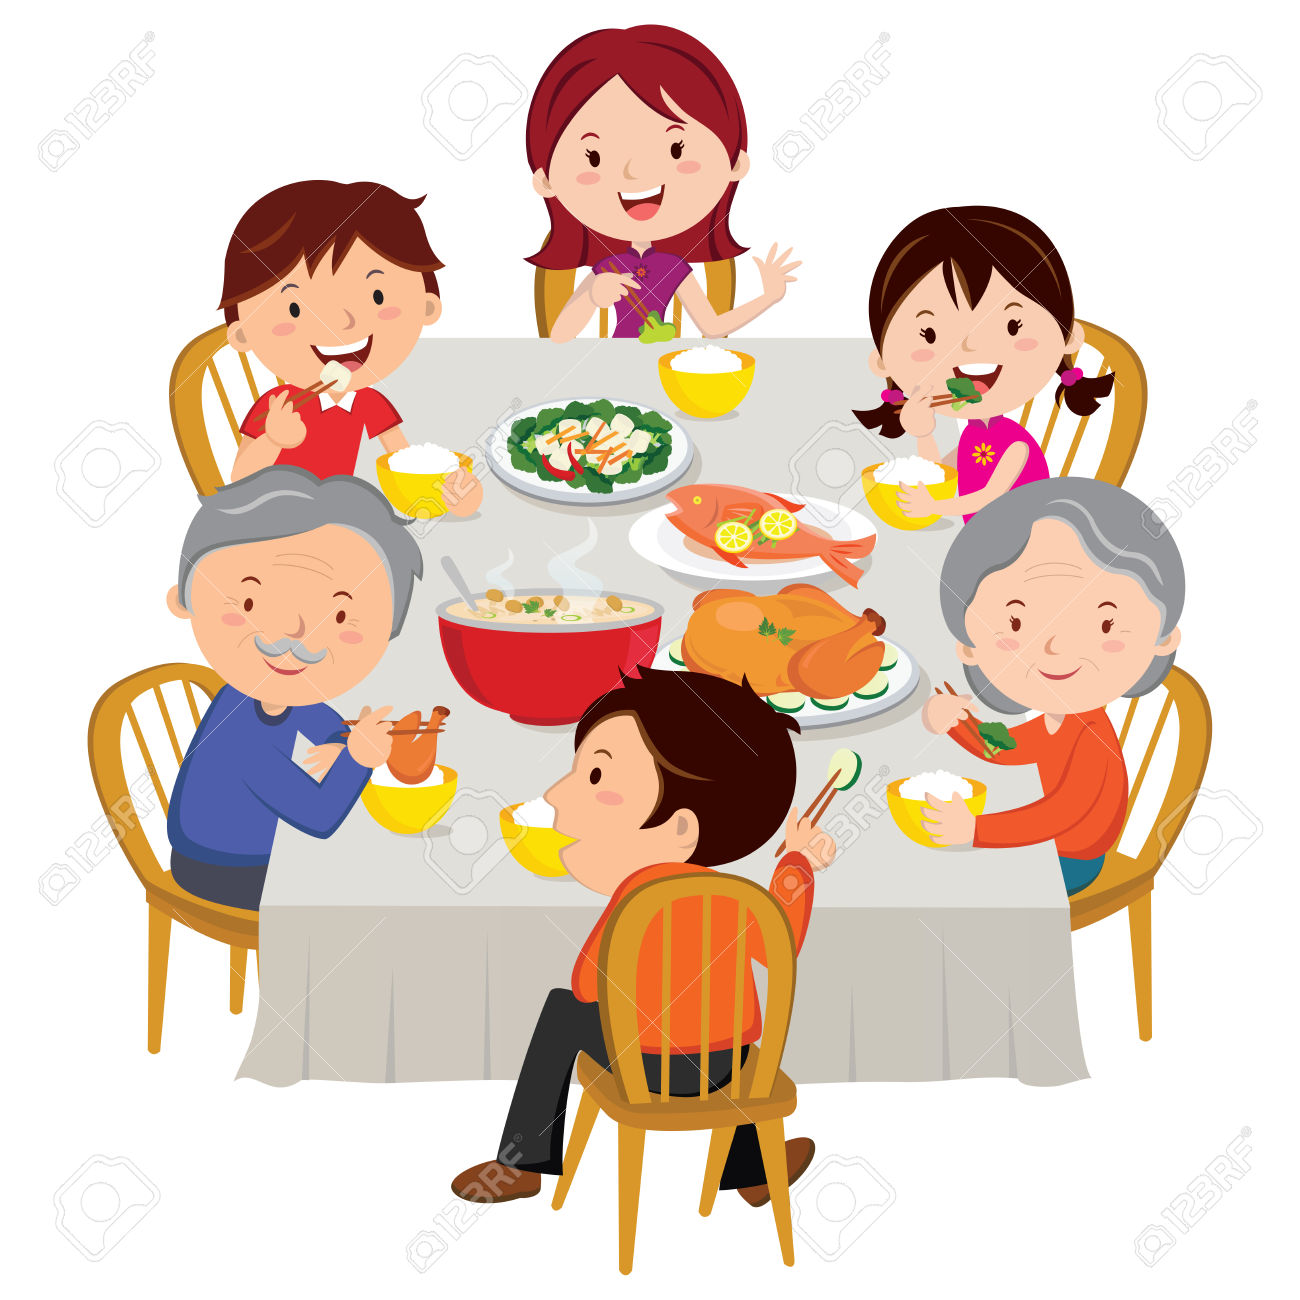 Family dinner clipart free picture freeuse stock Family Dinner Clipart   Free download best Family Dinner Clipart on ... picture freeuse stock